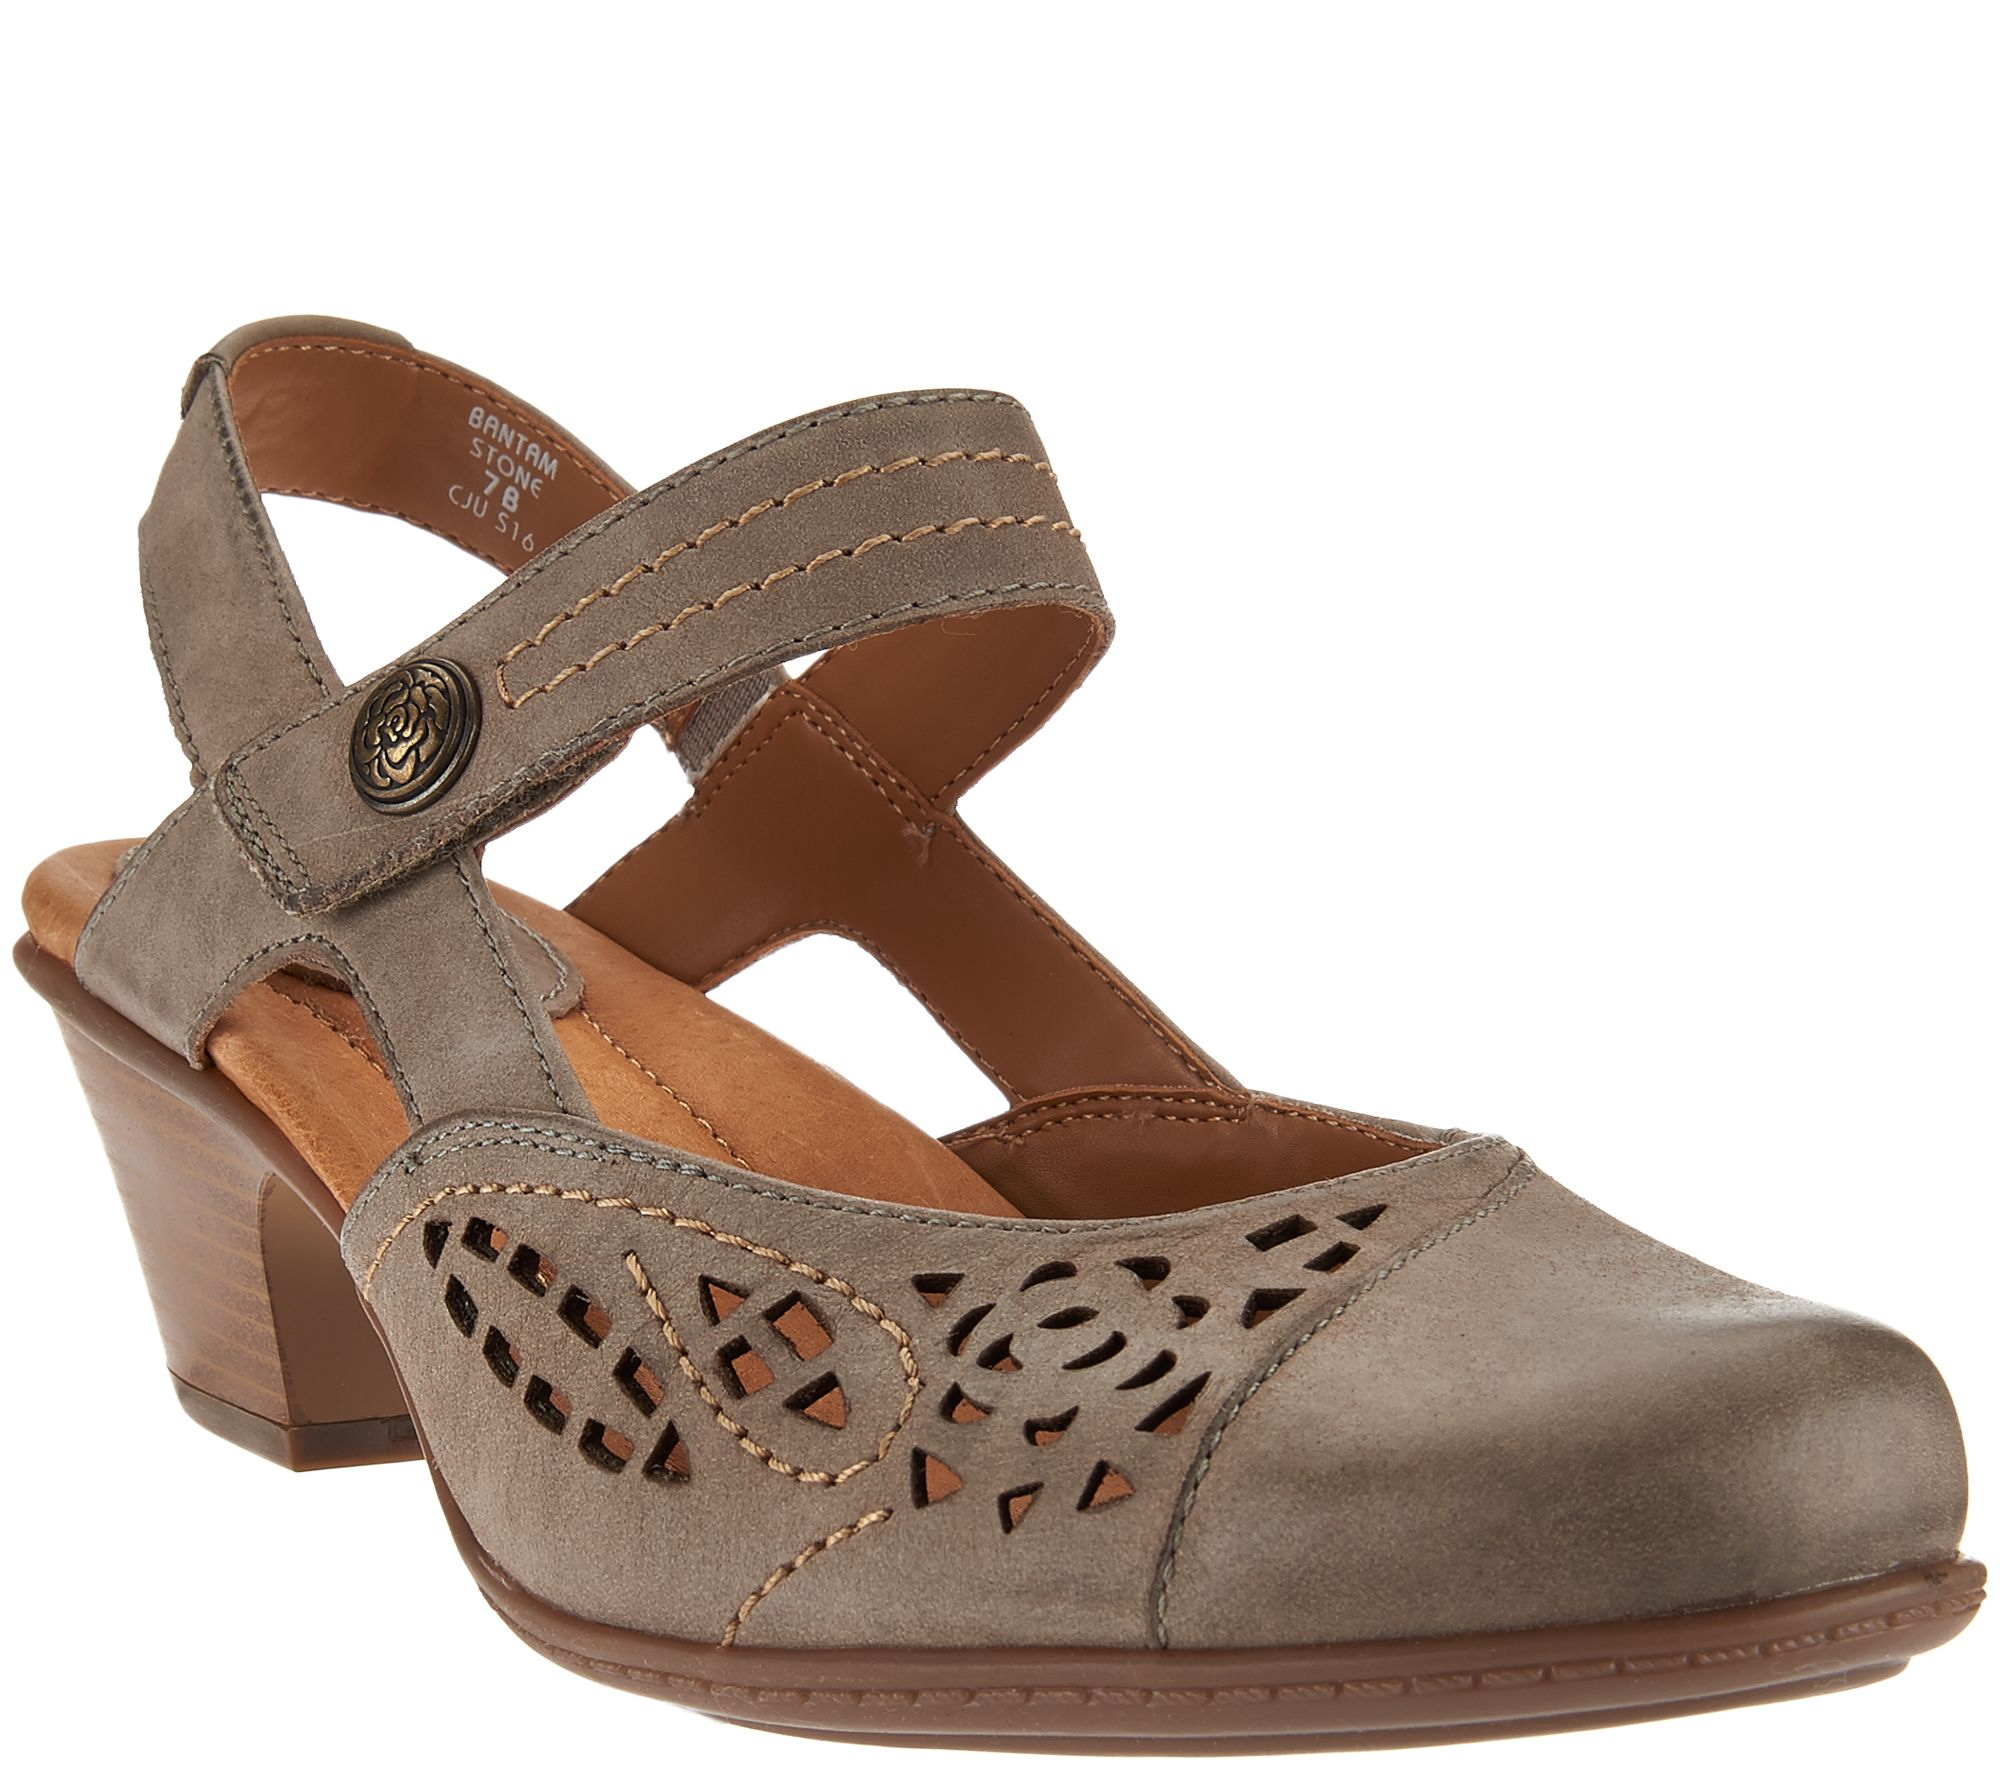 Earth Leather Perforated Sandals w/ Front Strap - Bantam